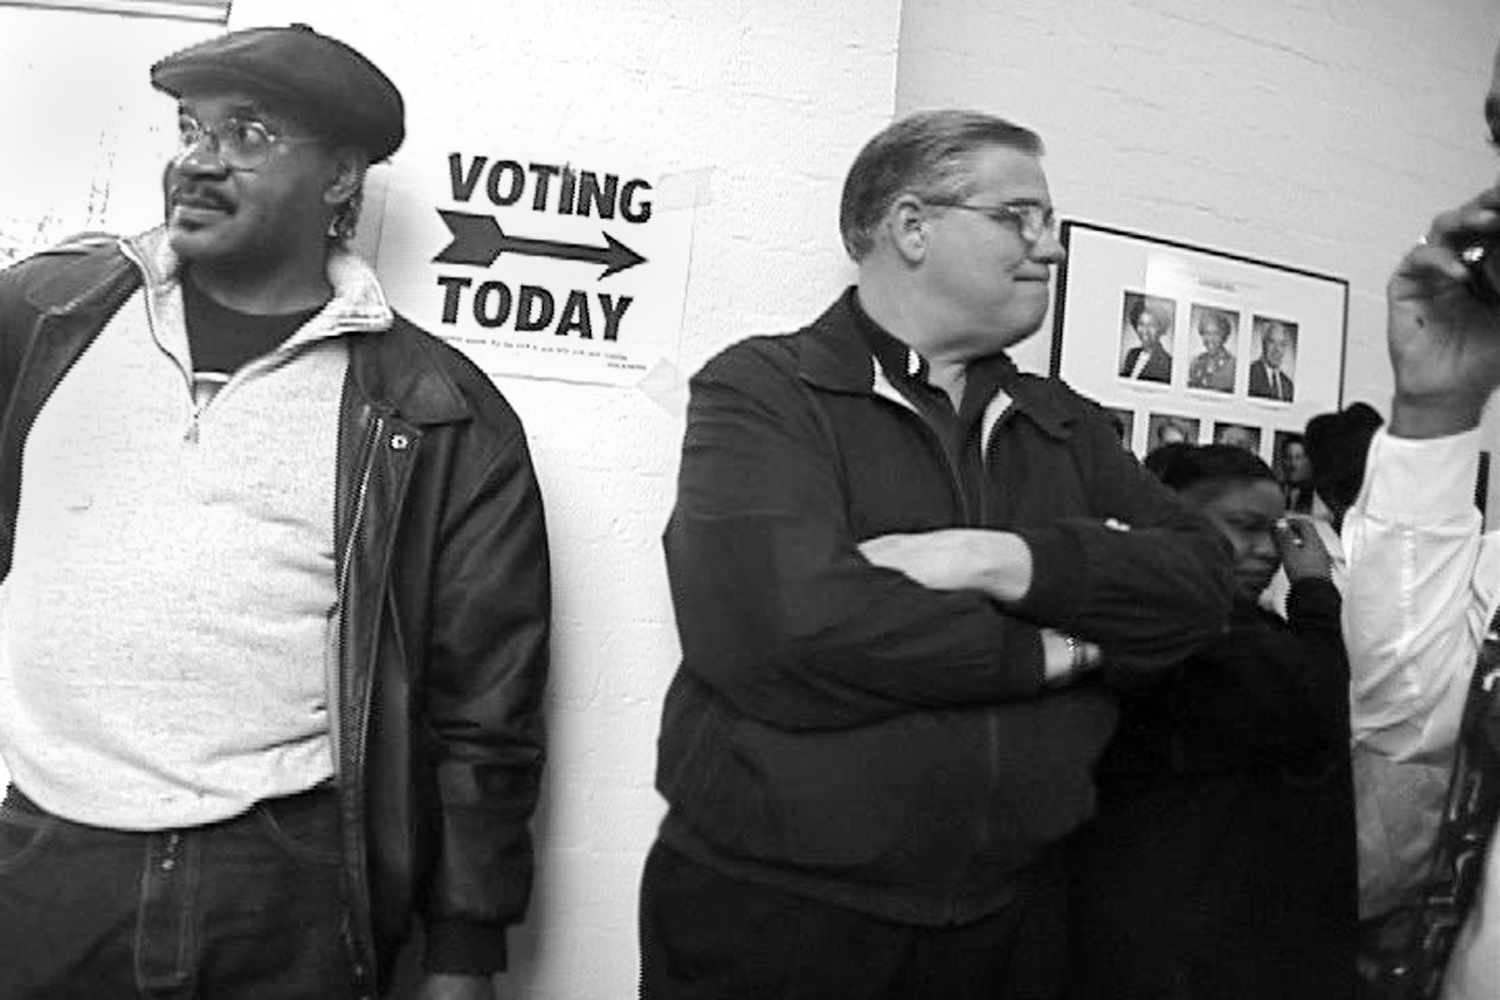 Tensions build as voters wait in line.